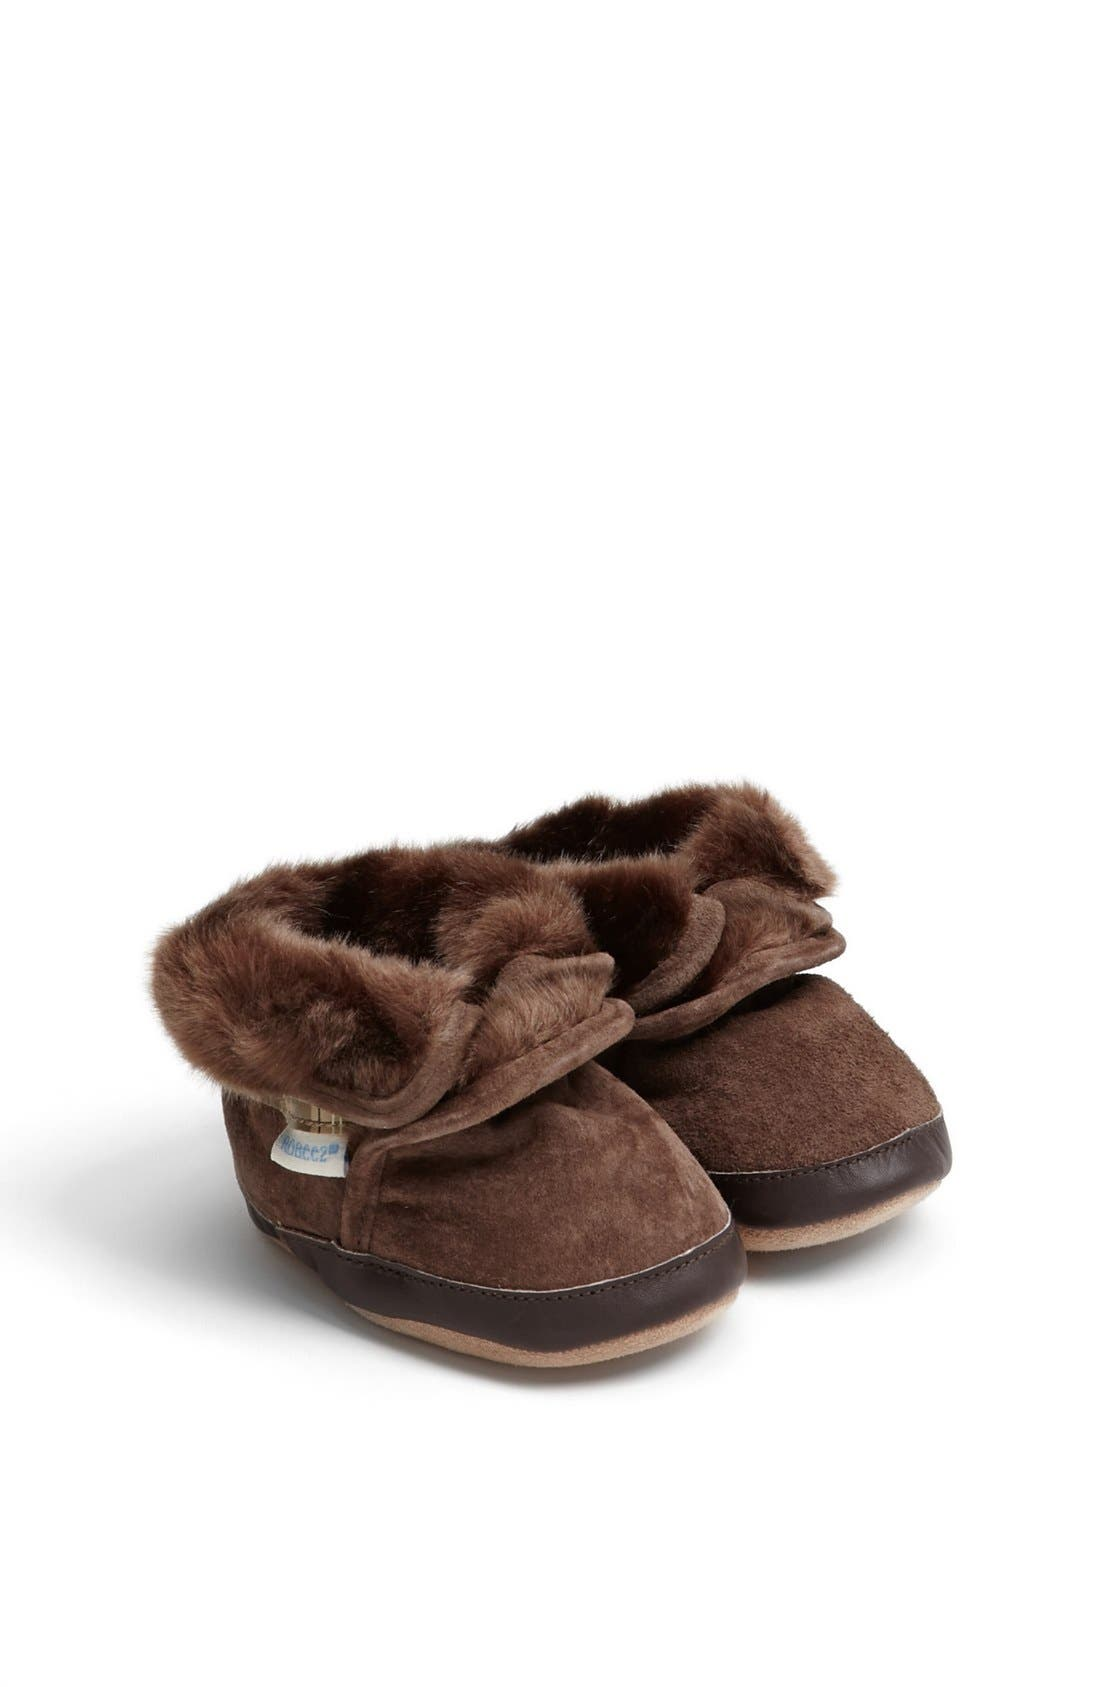 'Cozy' Ankle Bootie,                         Main,                         color, Brown